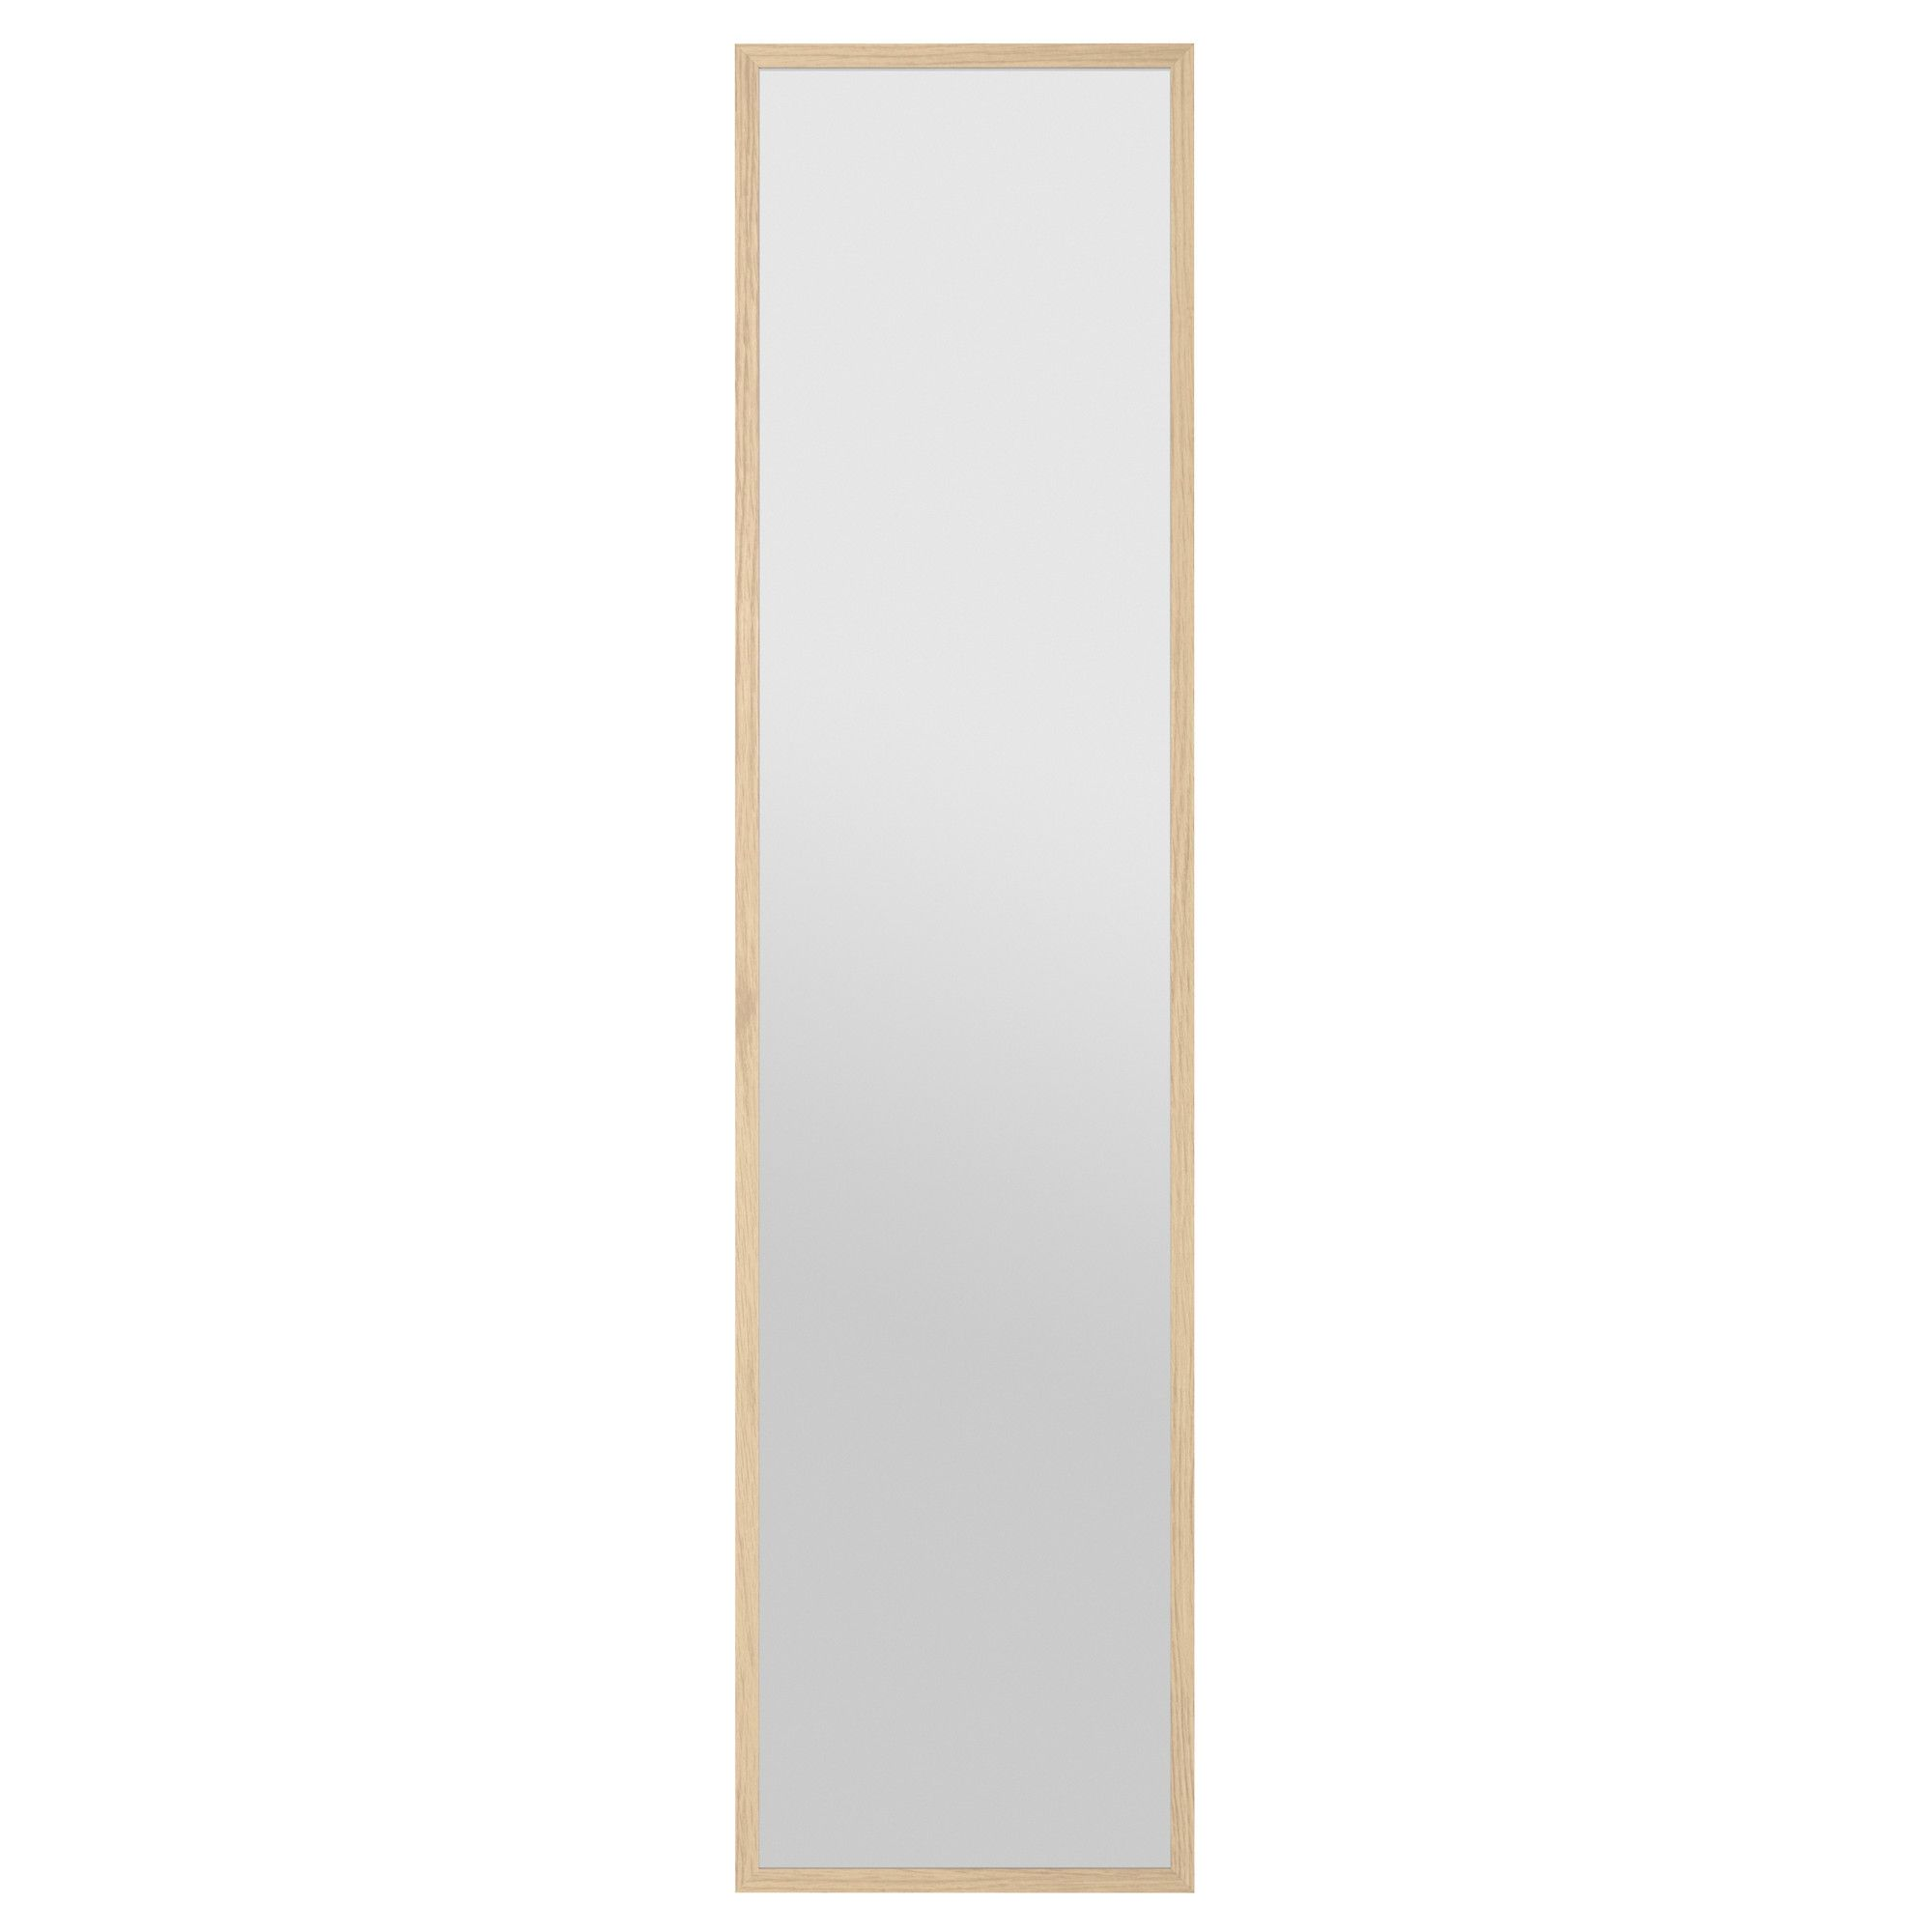 Ikea Us Furniture And Home Furnishings Stave Mirror Ikea White Stain